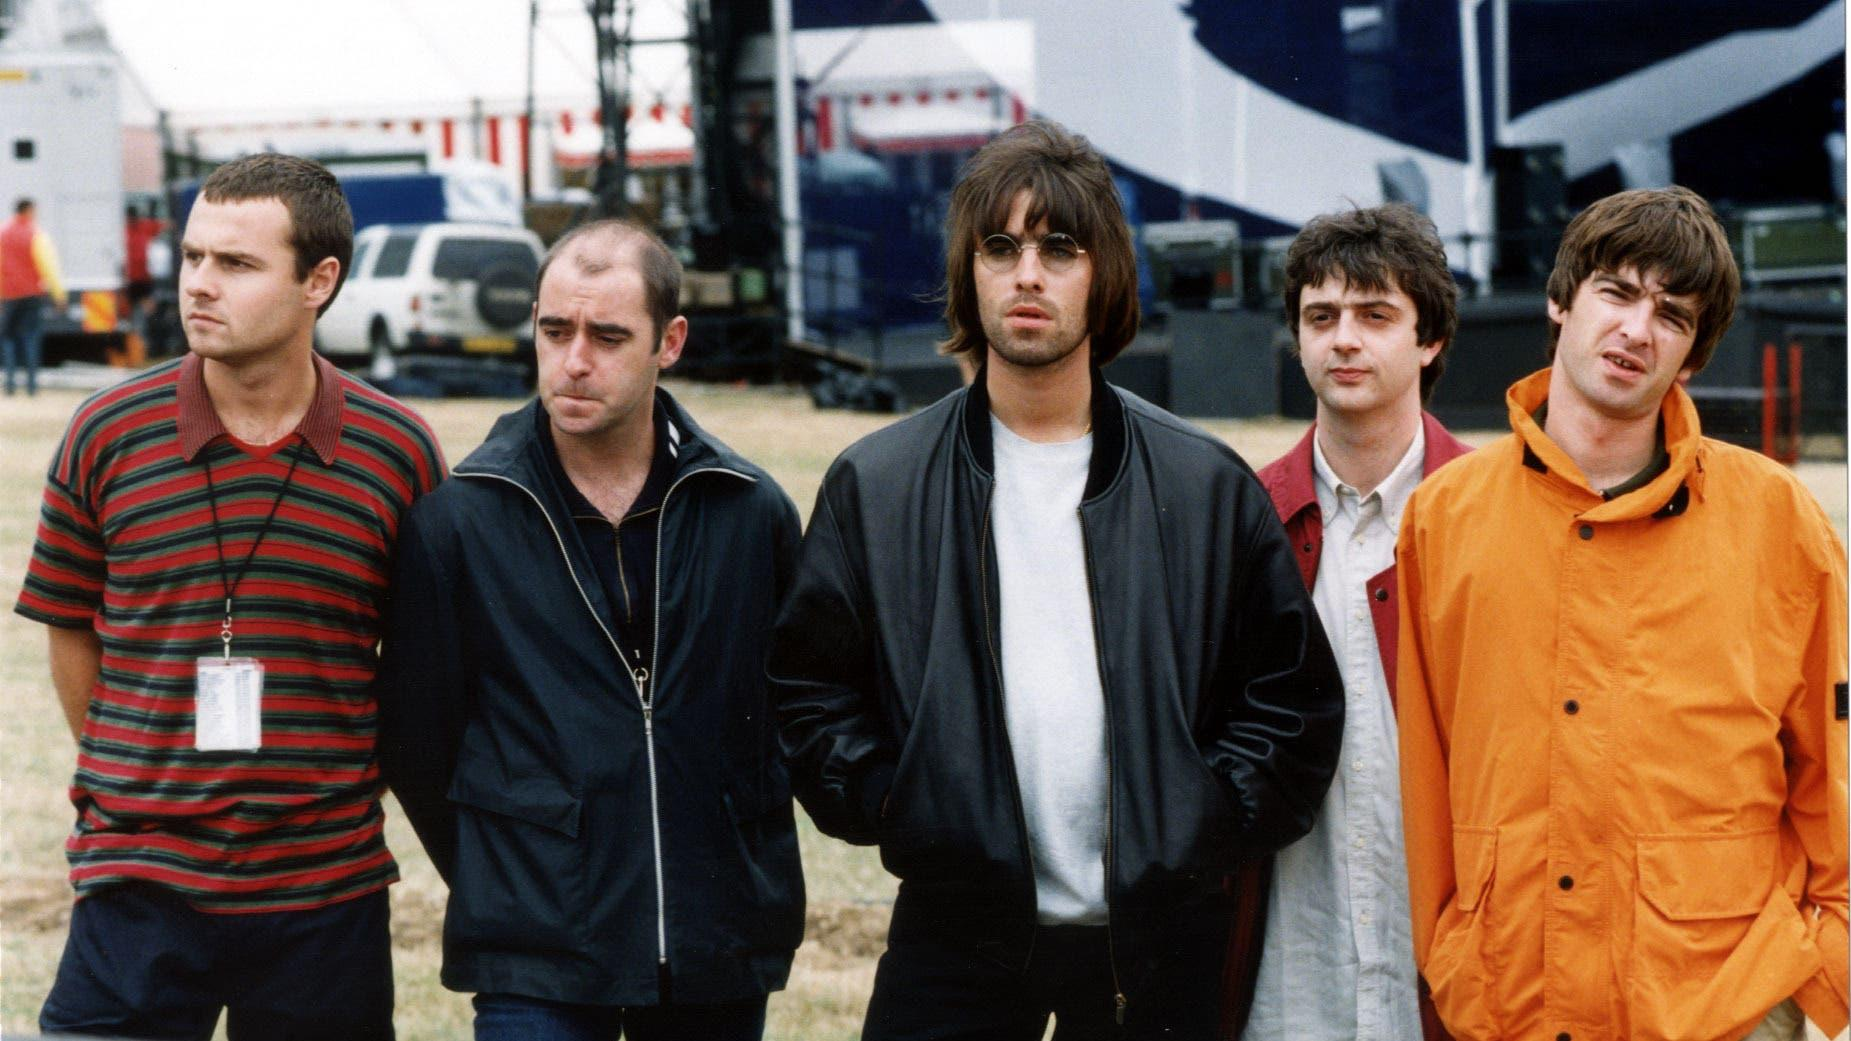 Liam and Noel Gallagher to produce documentary about Oasis gigs at Knebworth